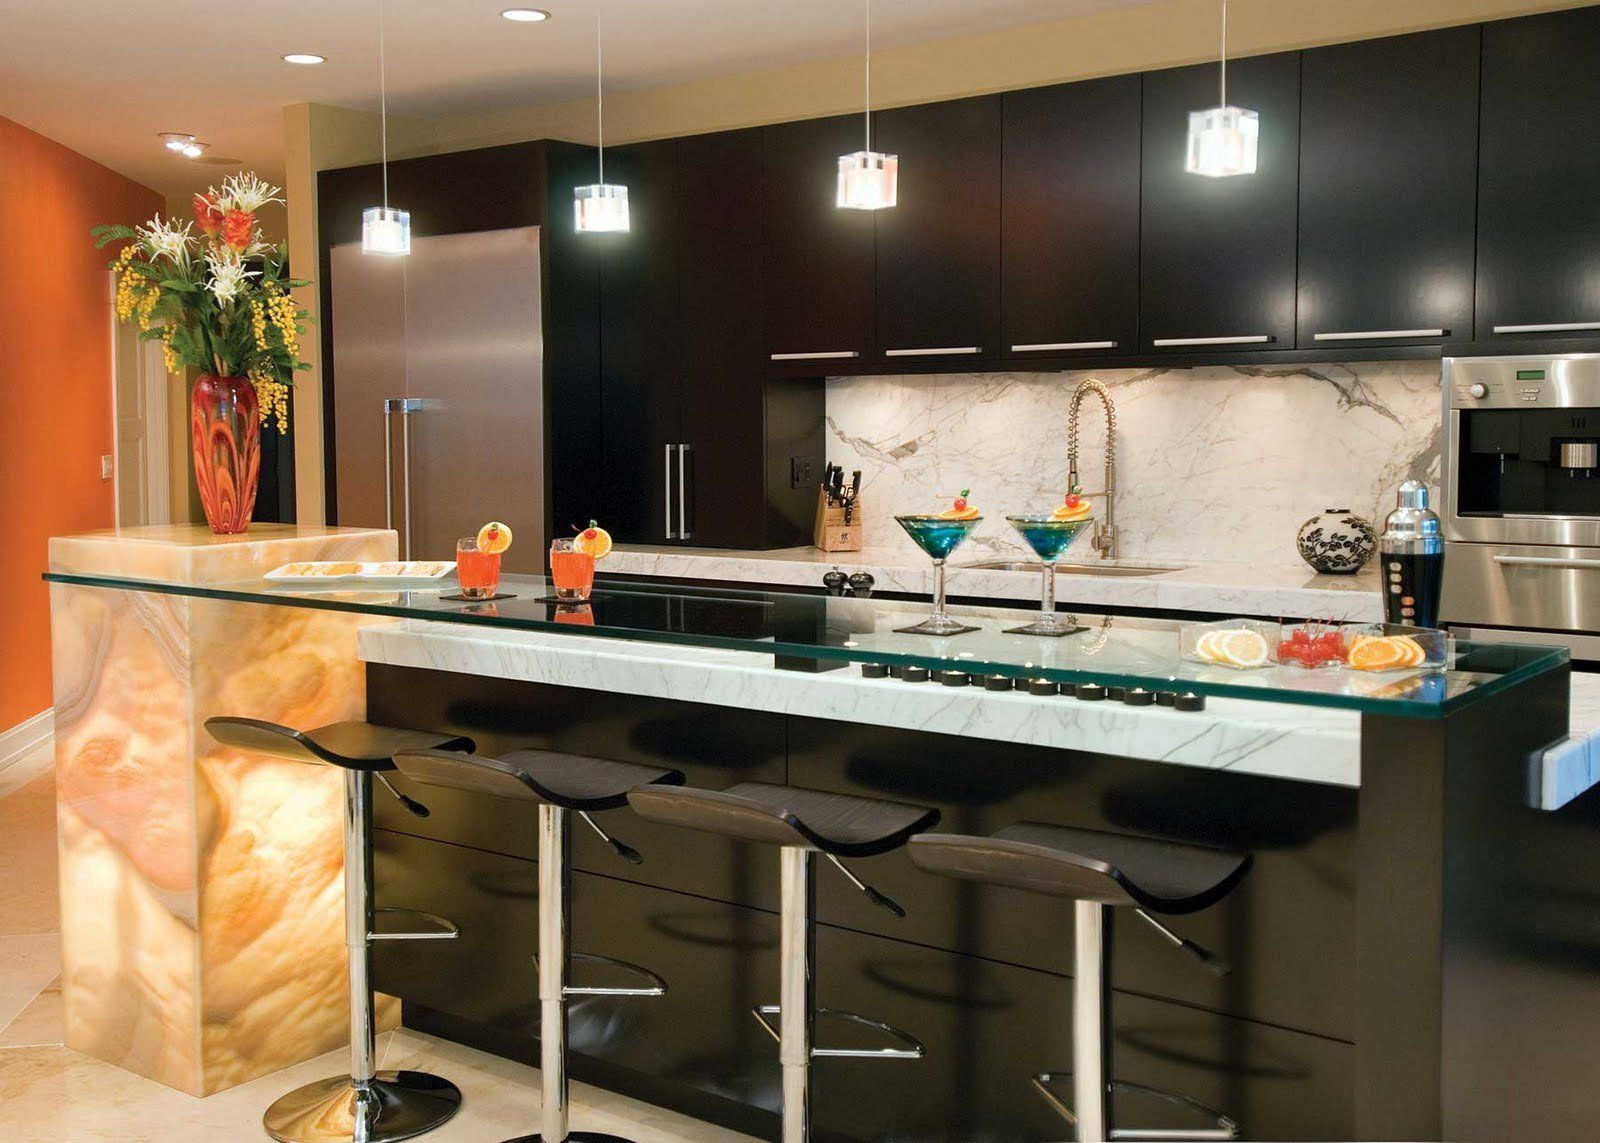 kitchen lighting ideas para iluminar la cocina